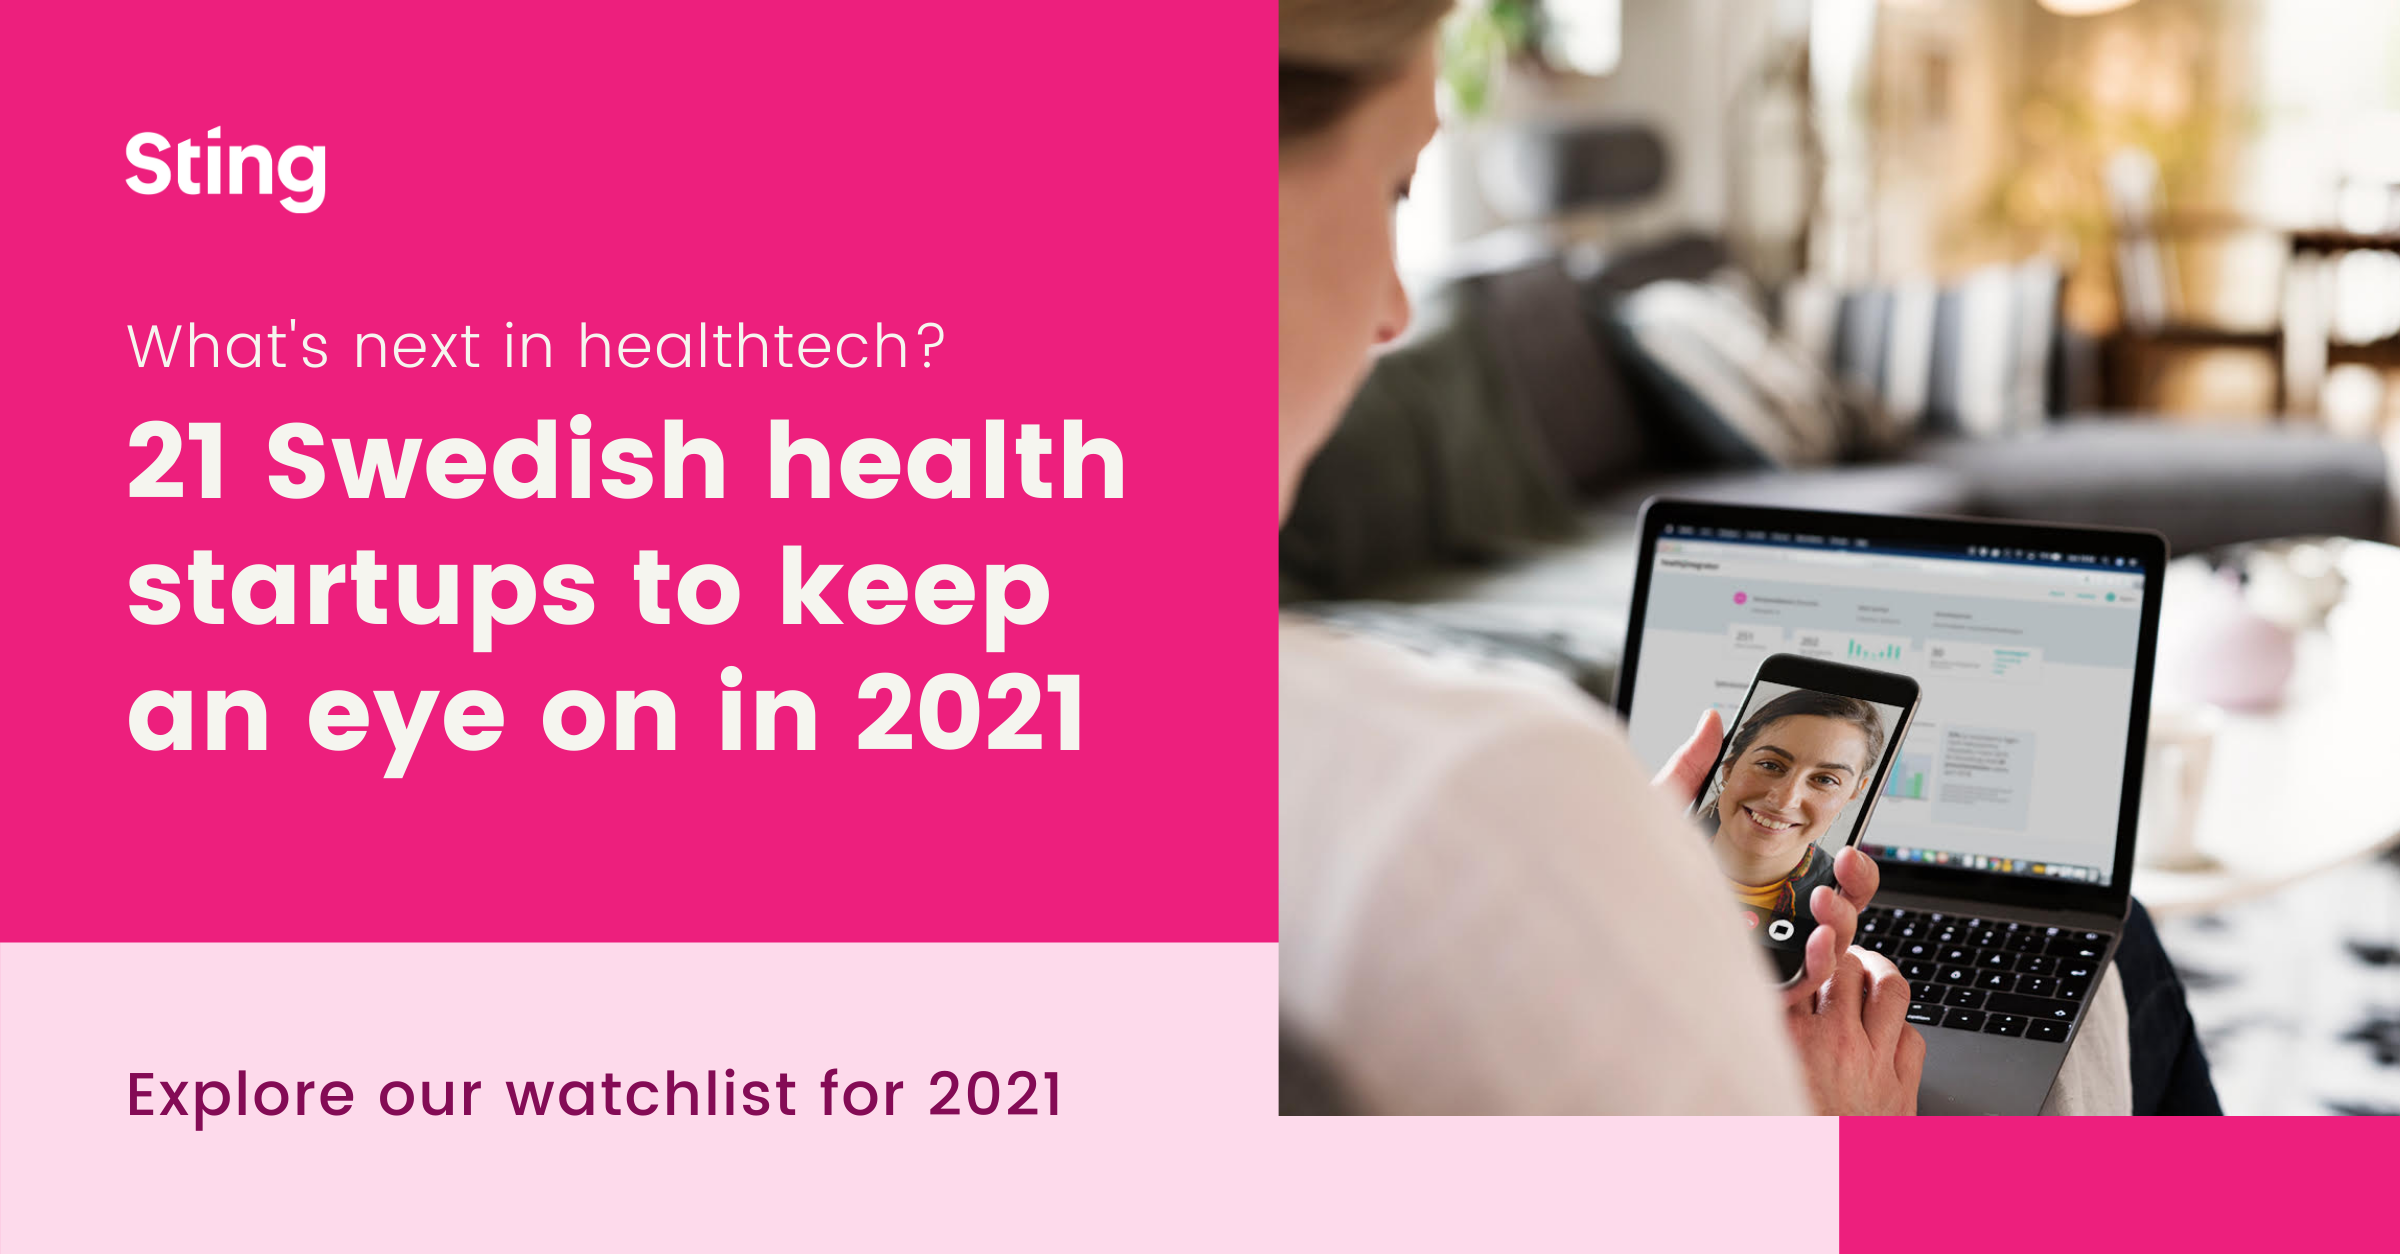 What's next in healthtech?